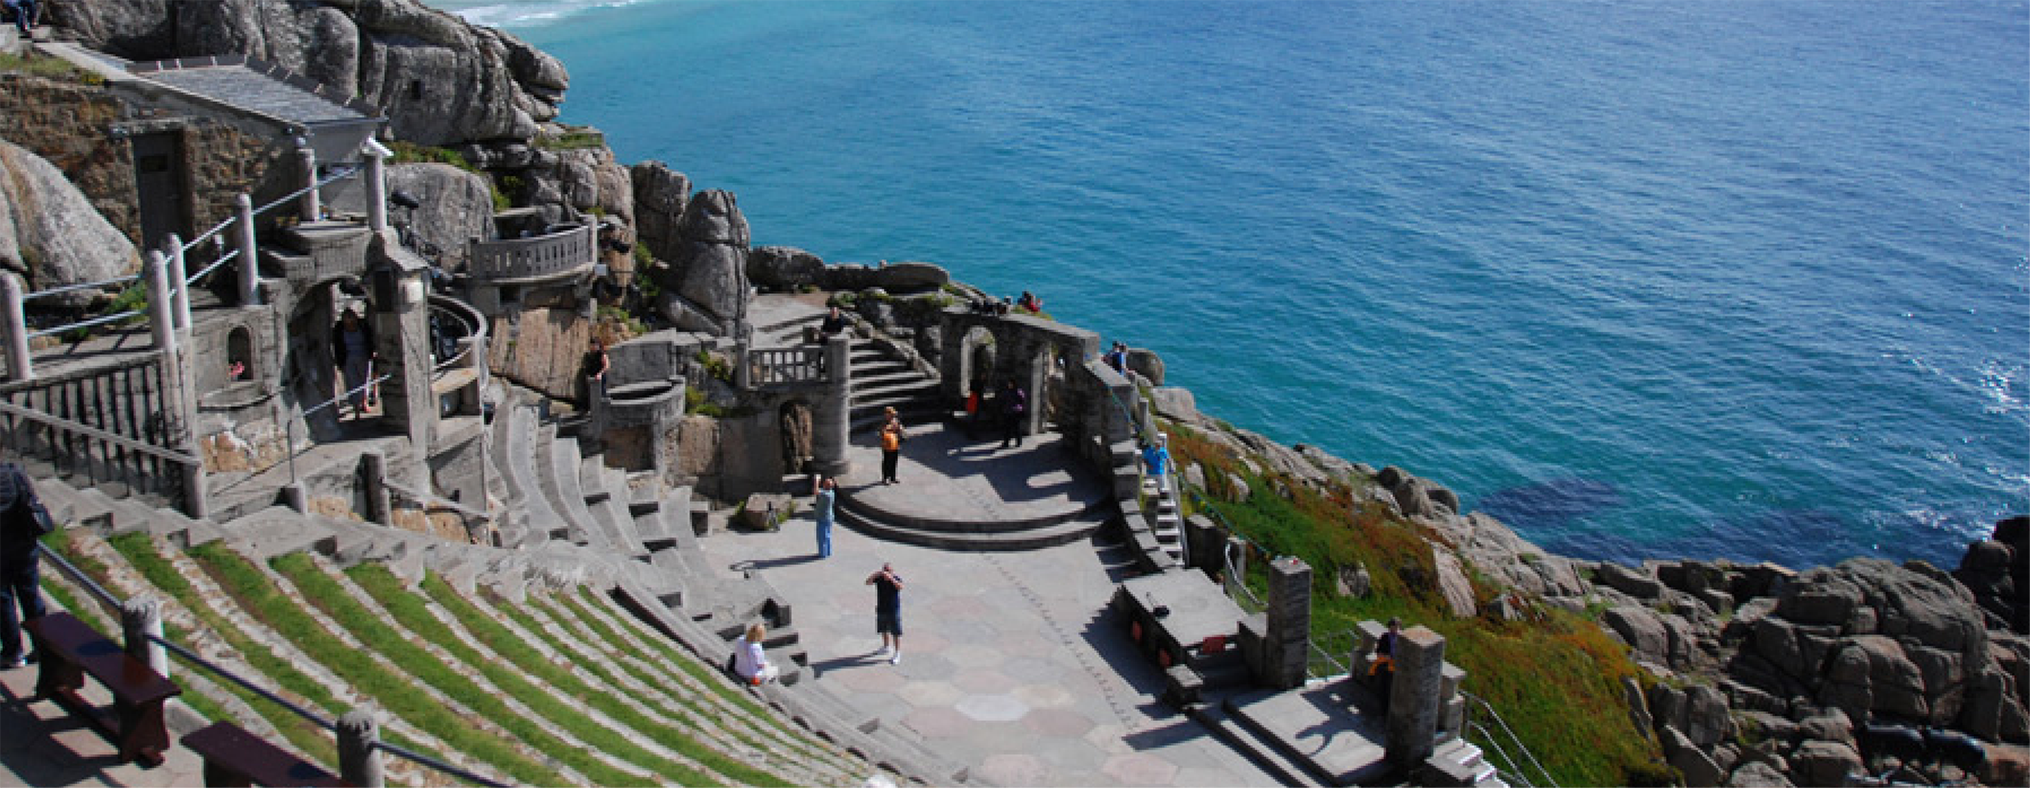 Orfeo at The Minack Theatre